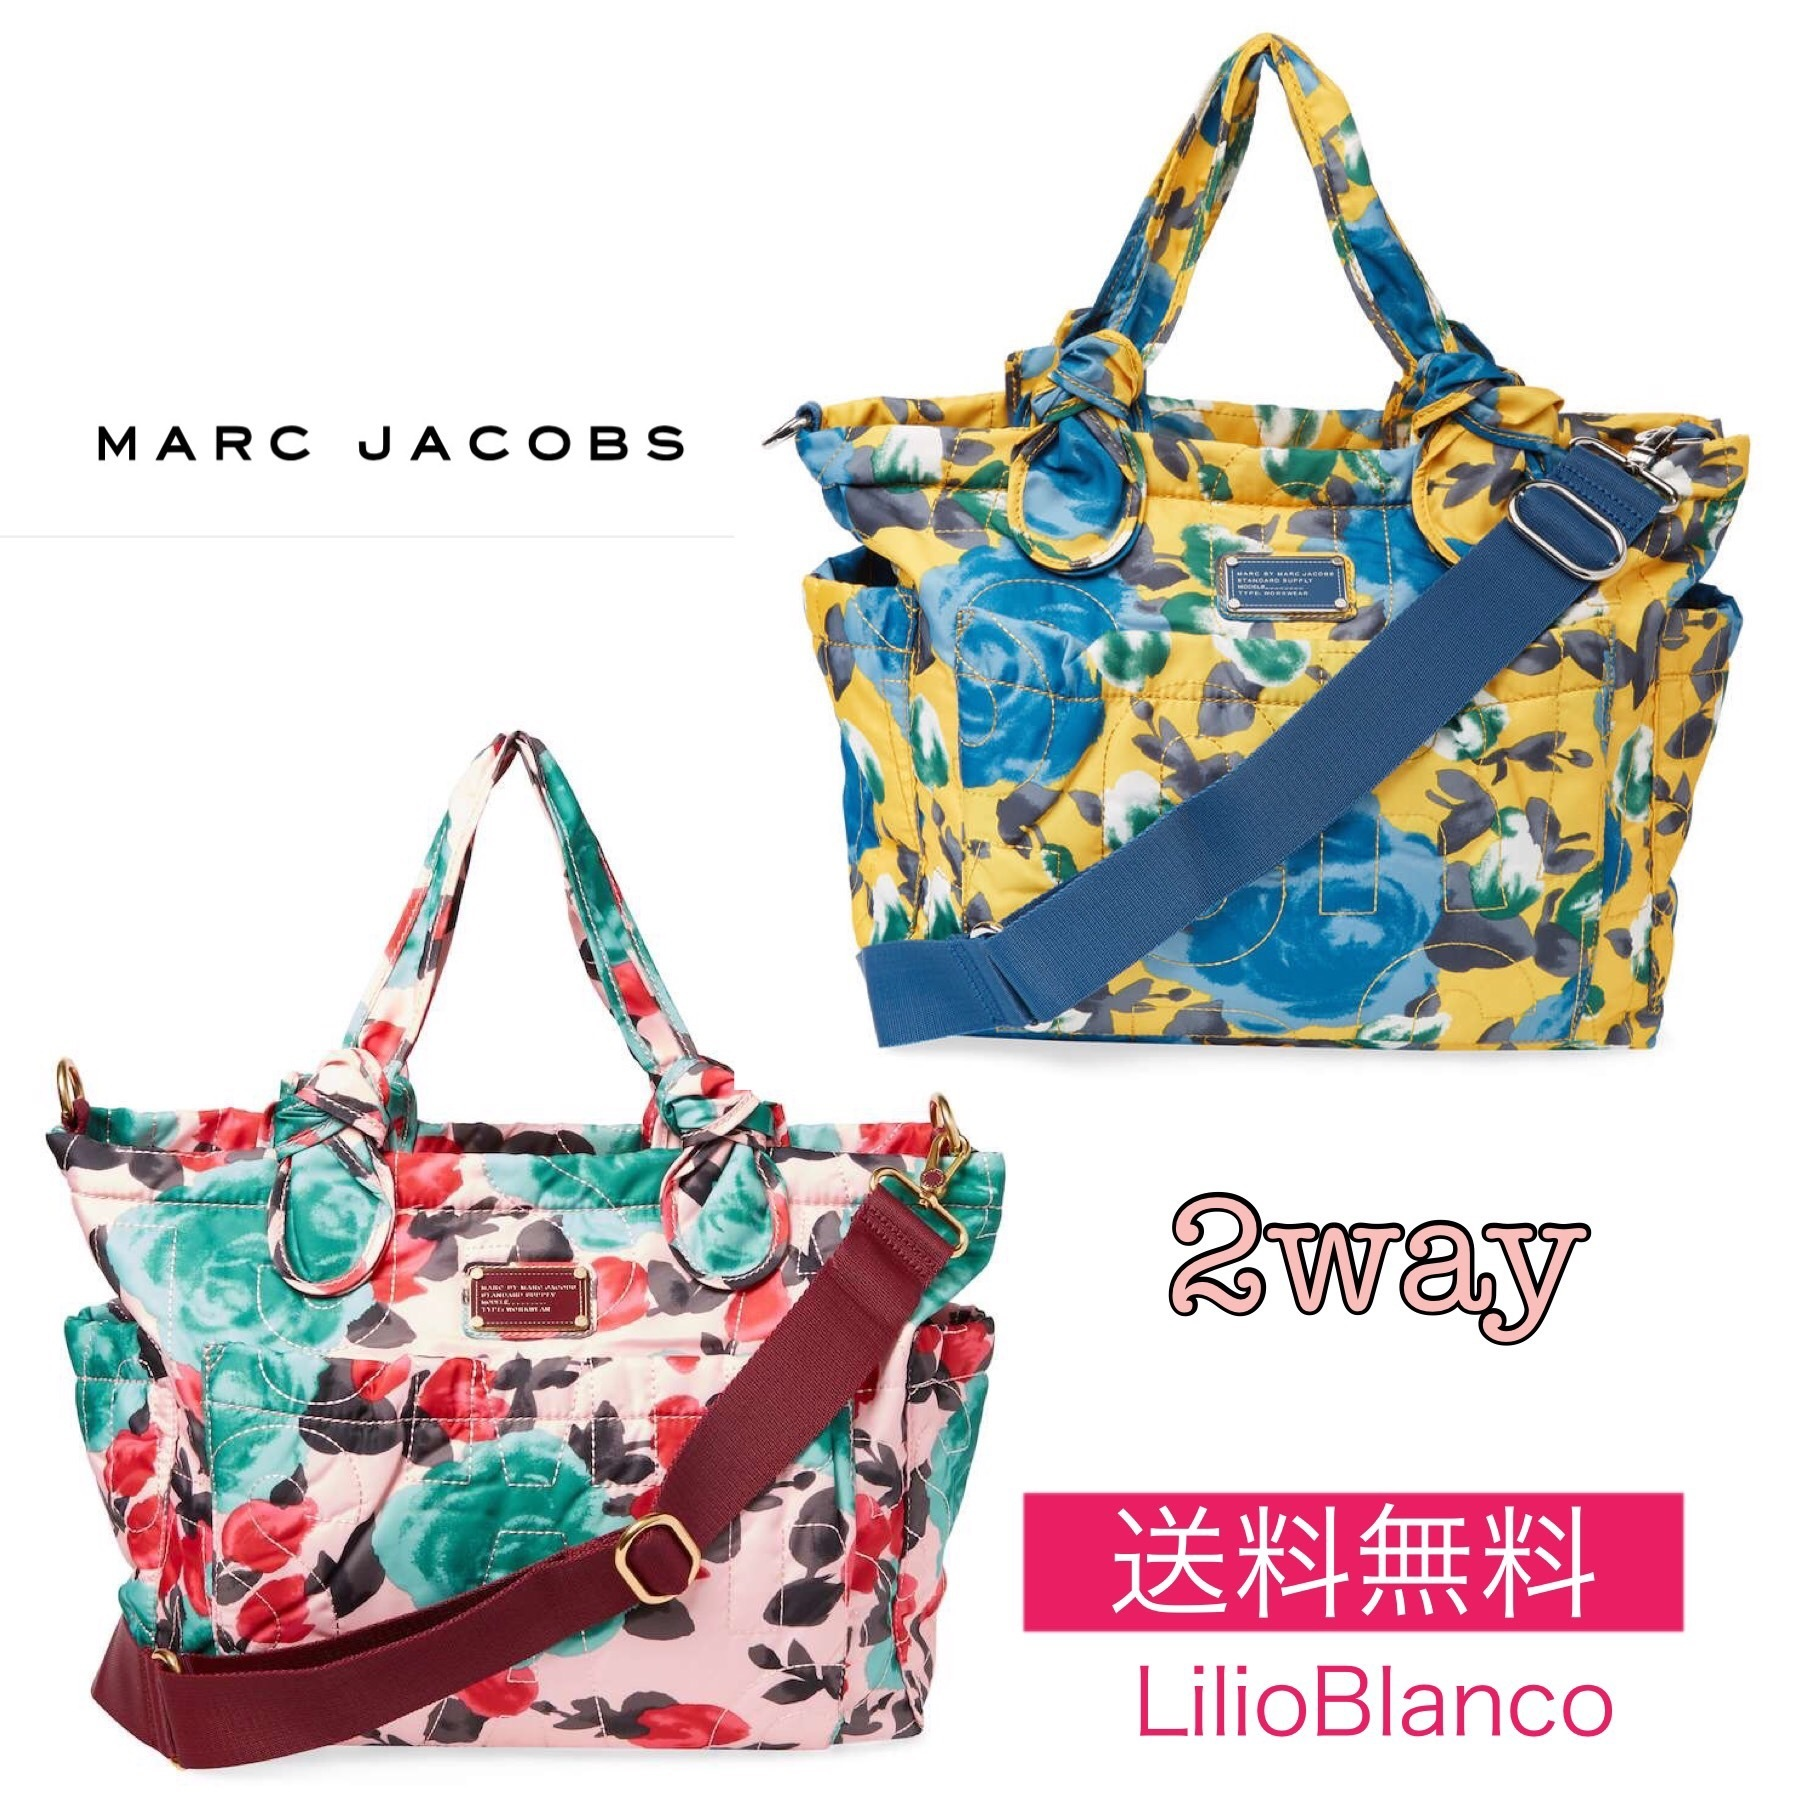 2way♡マザーズバッグ♡Marc by Marc Jacobs